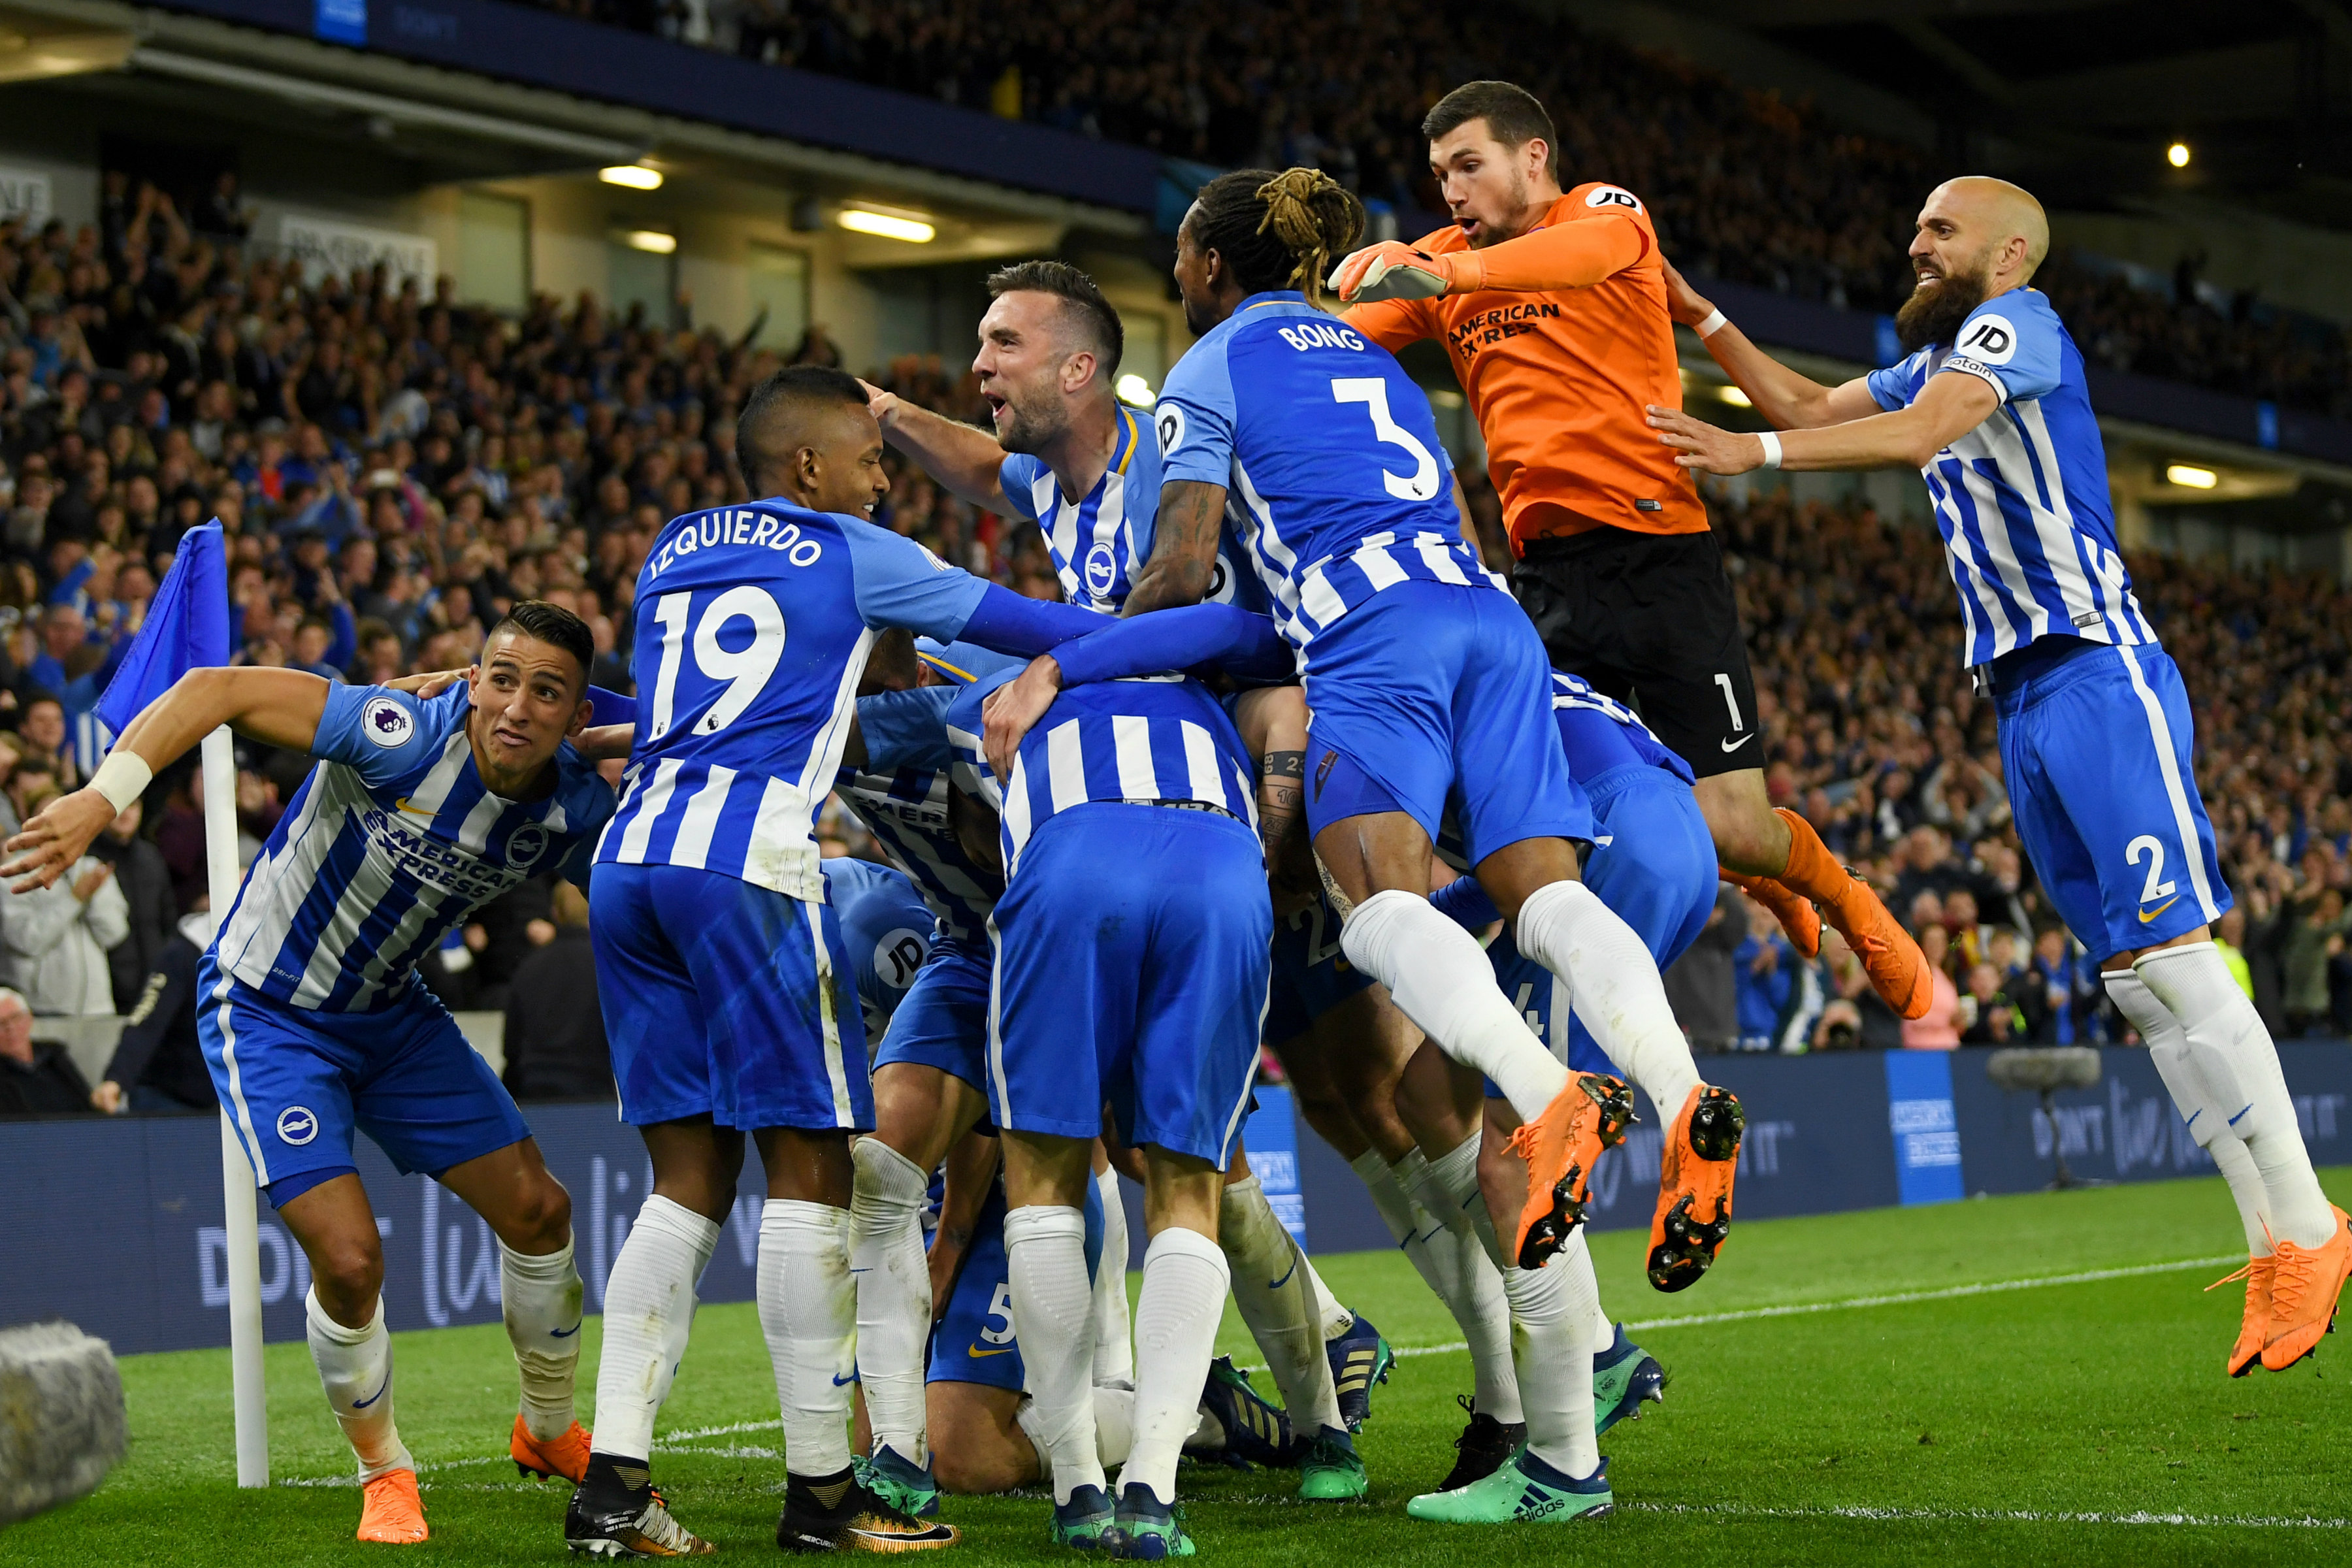 Brighton players celebrate Pascal Gross' winning goal.